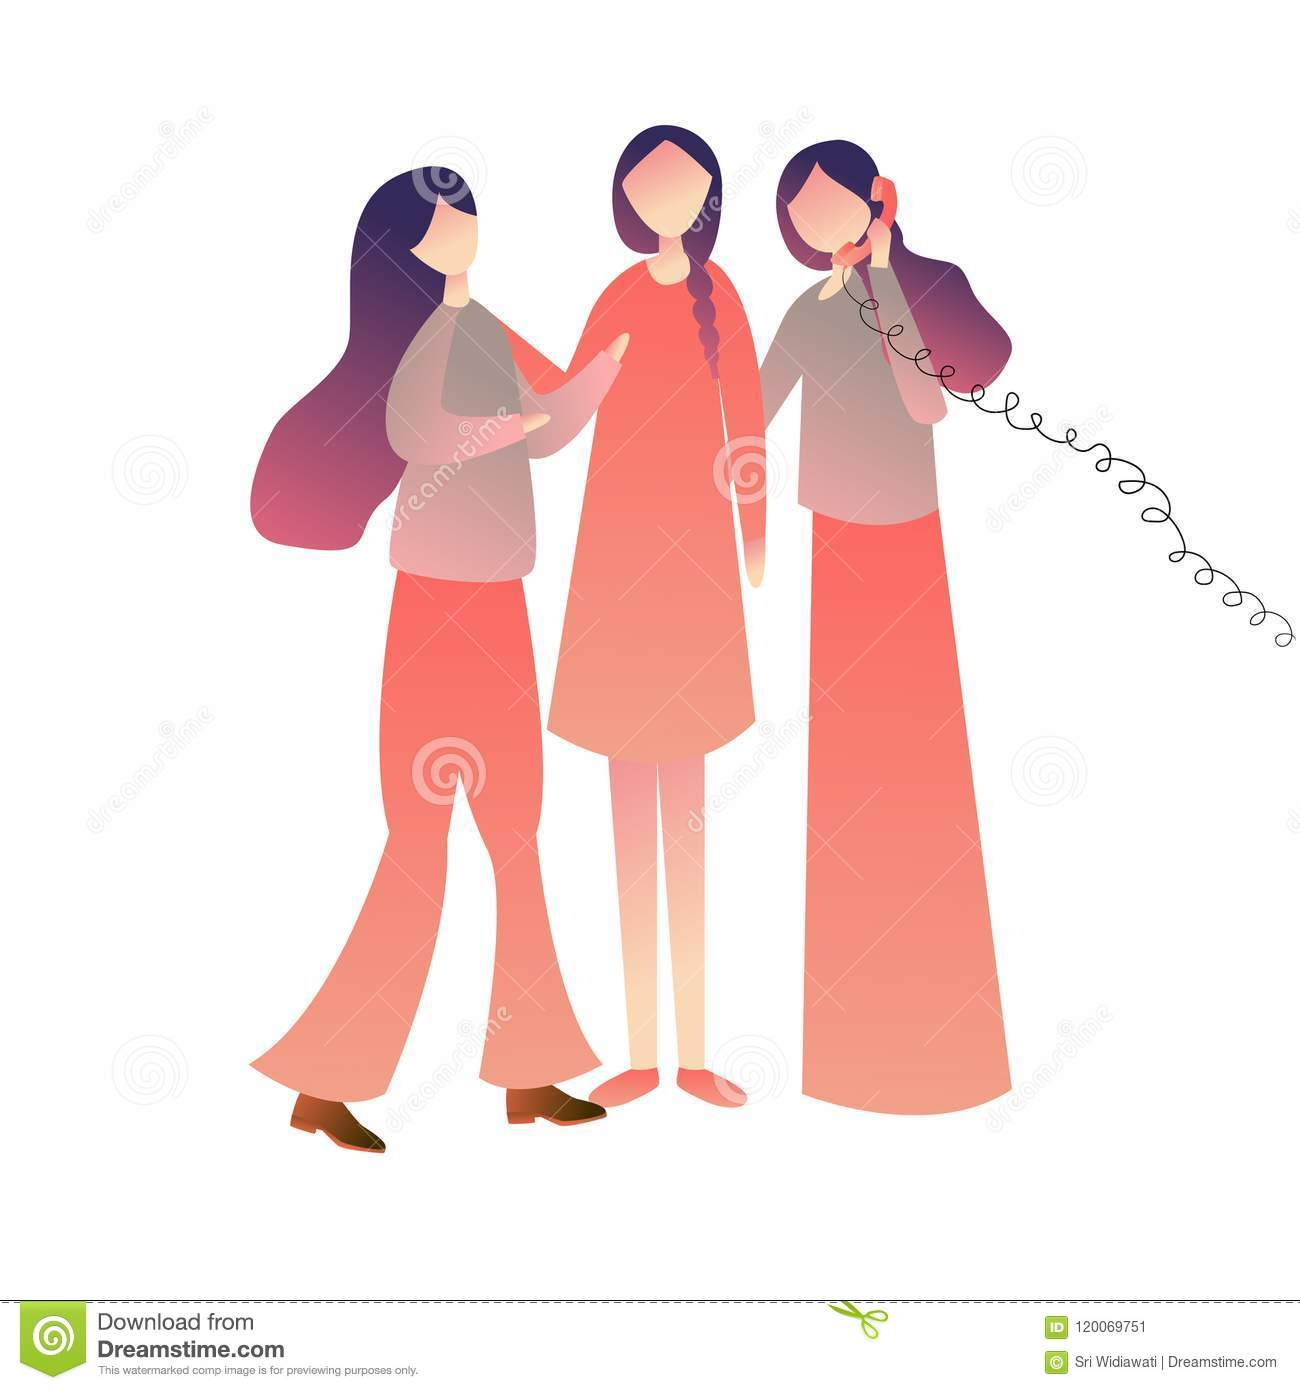 hight resolution of cheerful friends woman girls standing on call together enjoying playing old wired phone commubnication symbol